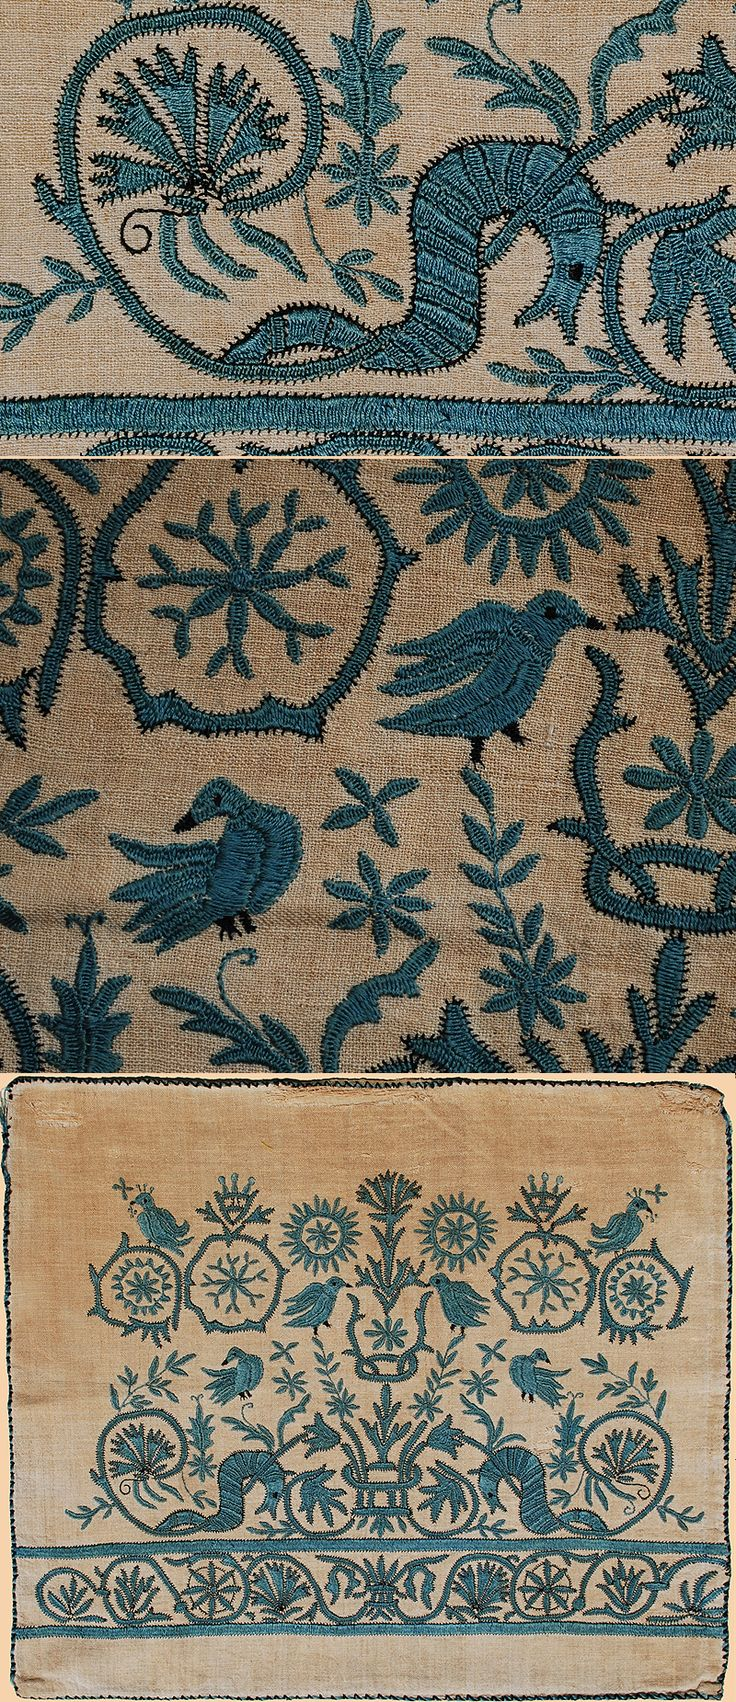 LATE 18th CENTURY GREEK SILK EMBROIDERY FROM SKYROS